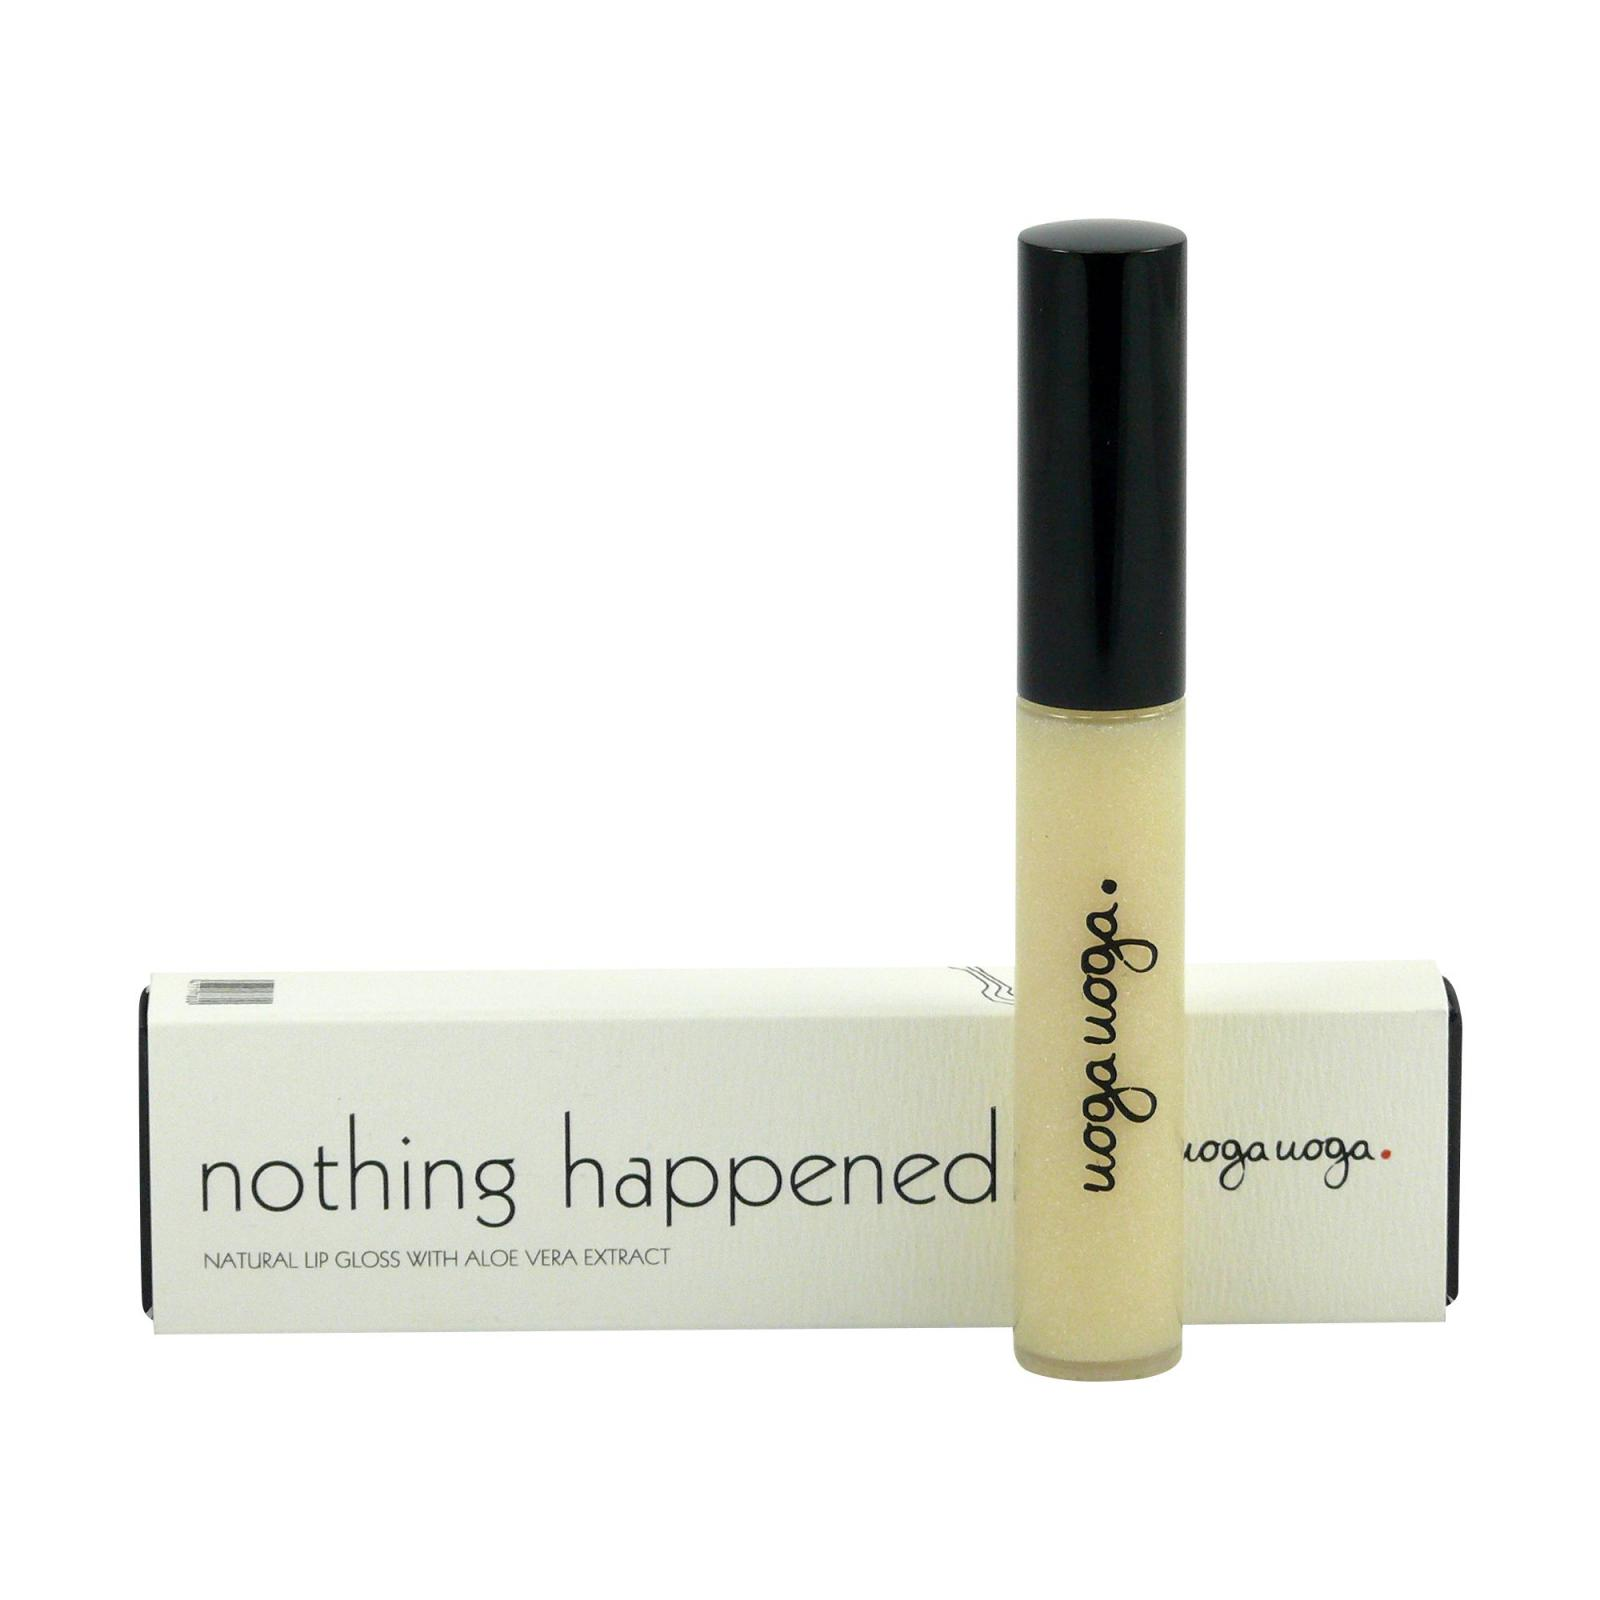 Uoga Uoga Lesk na rty 622 Nothing Happened 7 ml